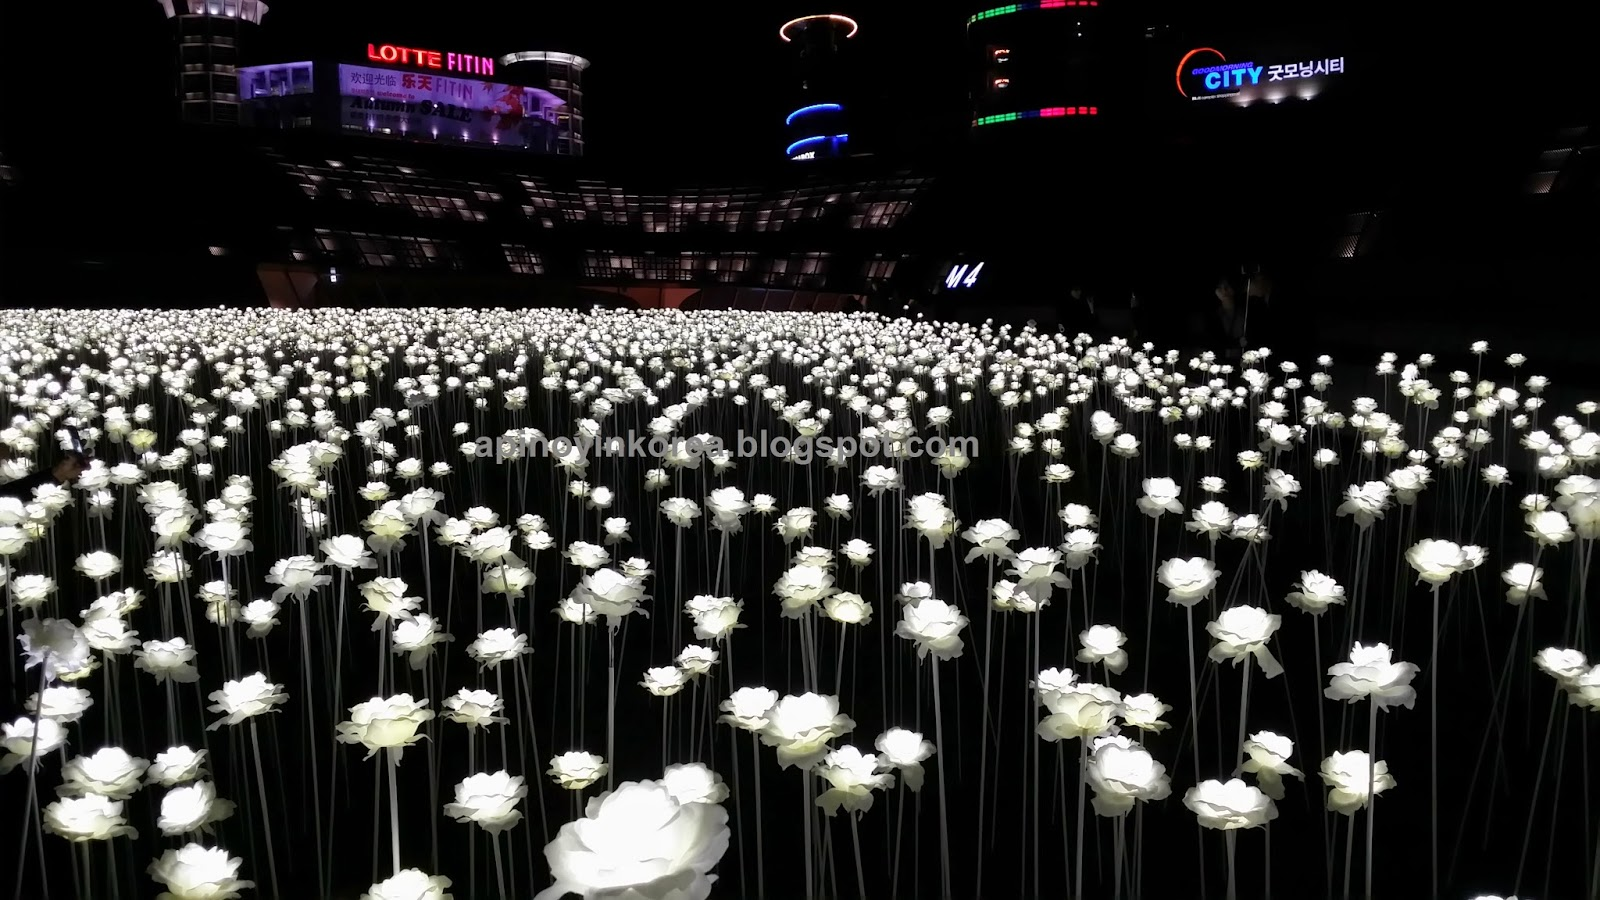 A Pinoy in Korea  Dongdaemun s 20 000 White Flowers  A Garden By Day     A Pinoy in Korea  Dongdaemun s 20 000 White Flowers  A Garden By Day  A  Galaxy Of Stars At Night